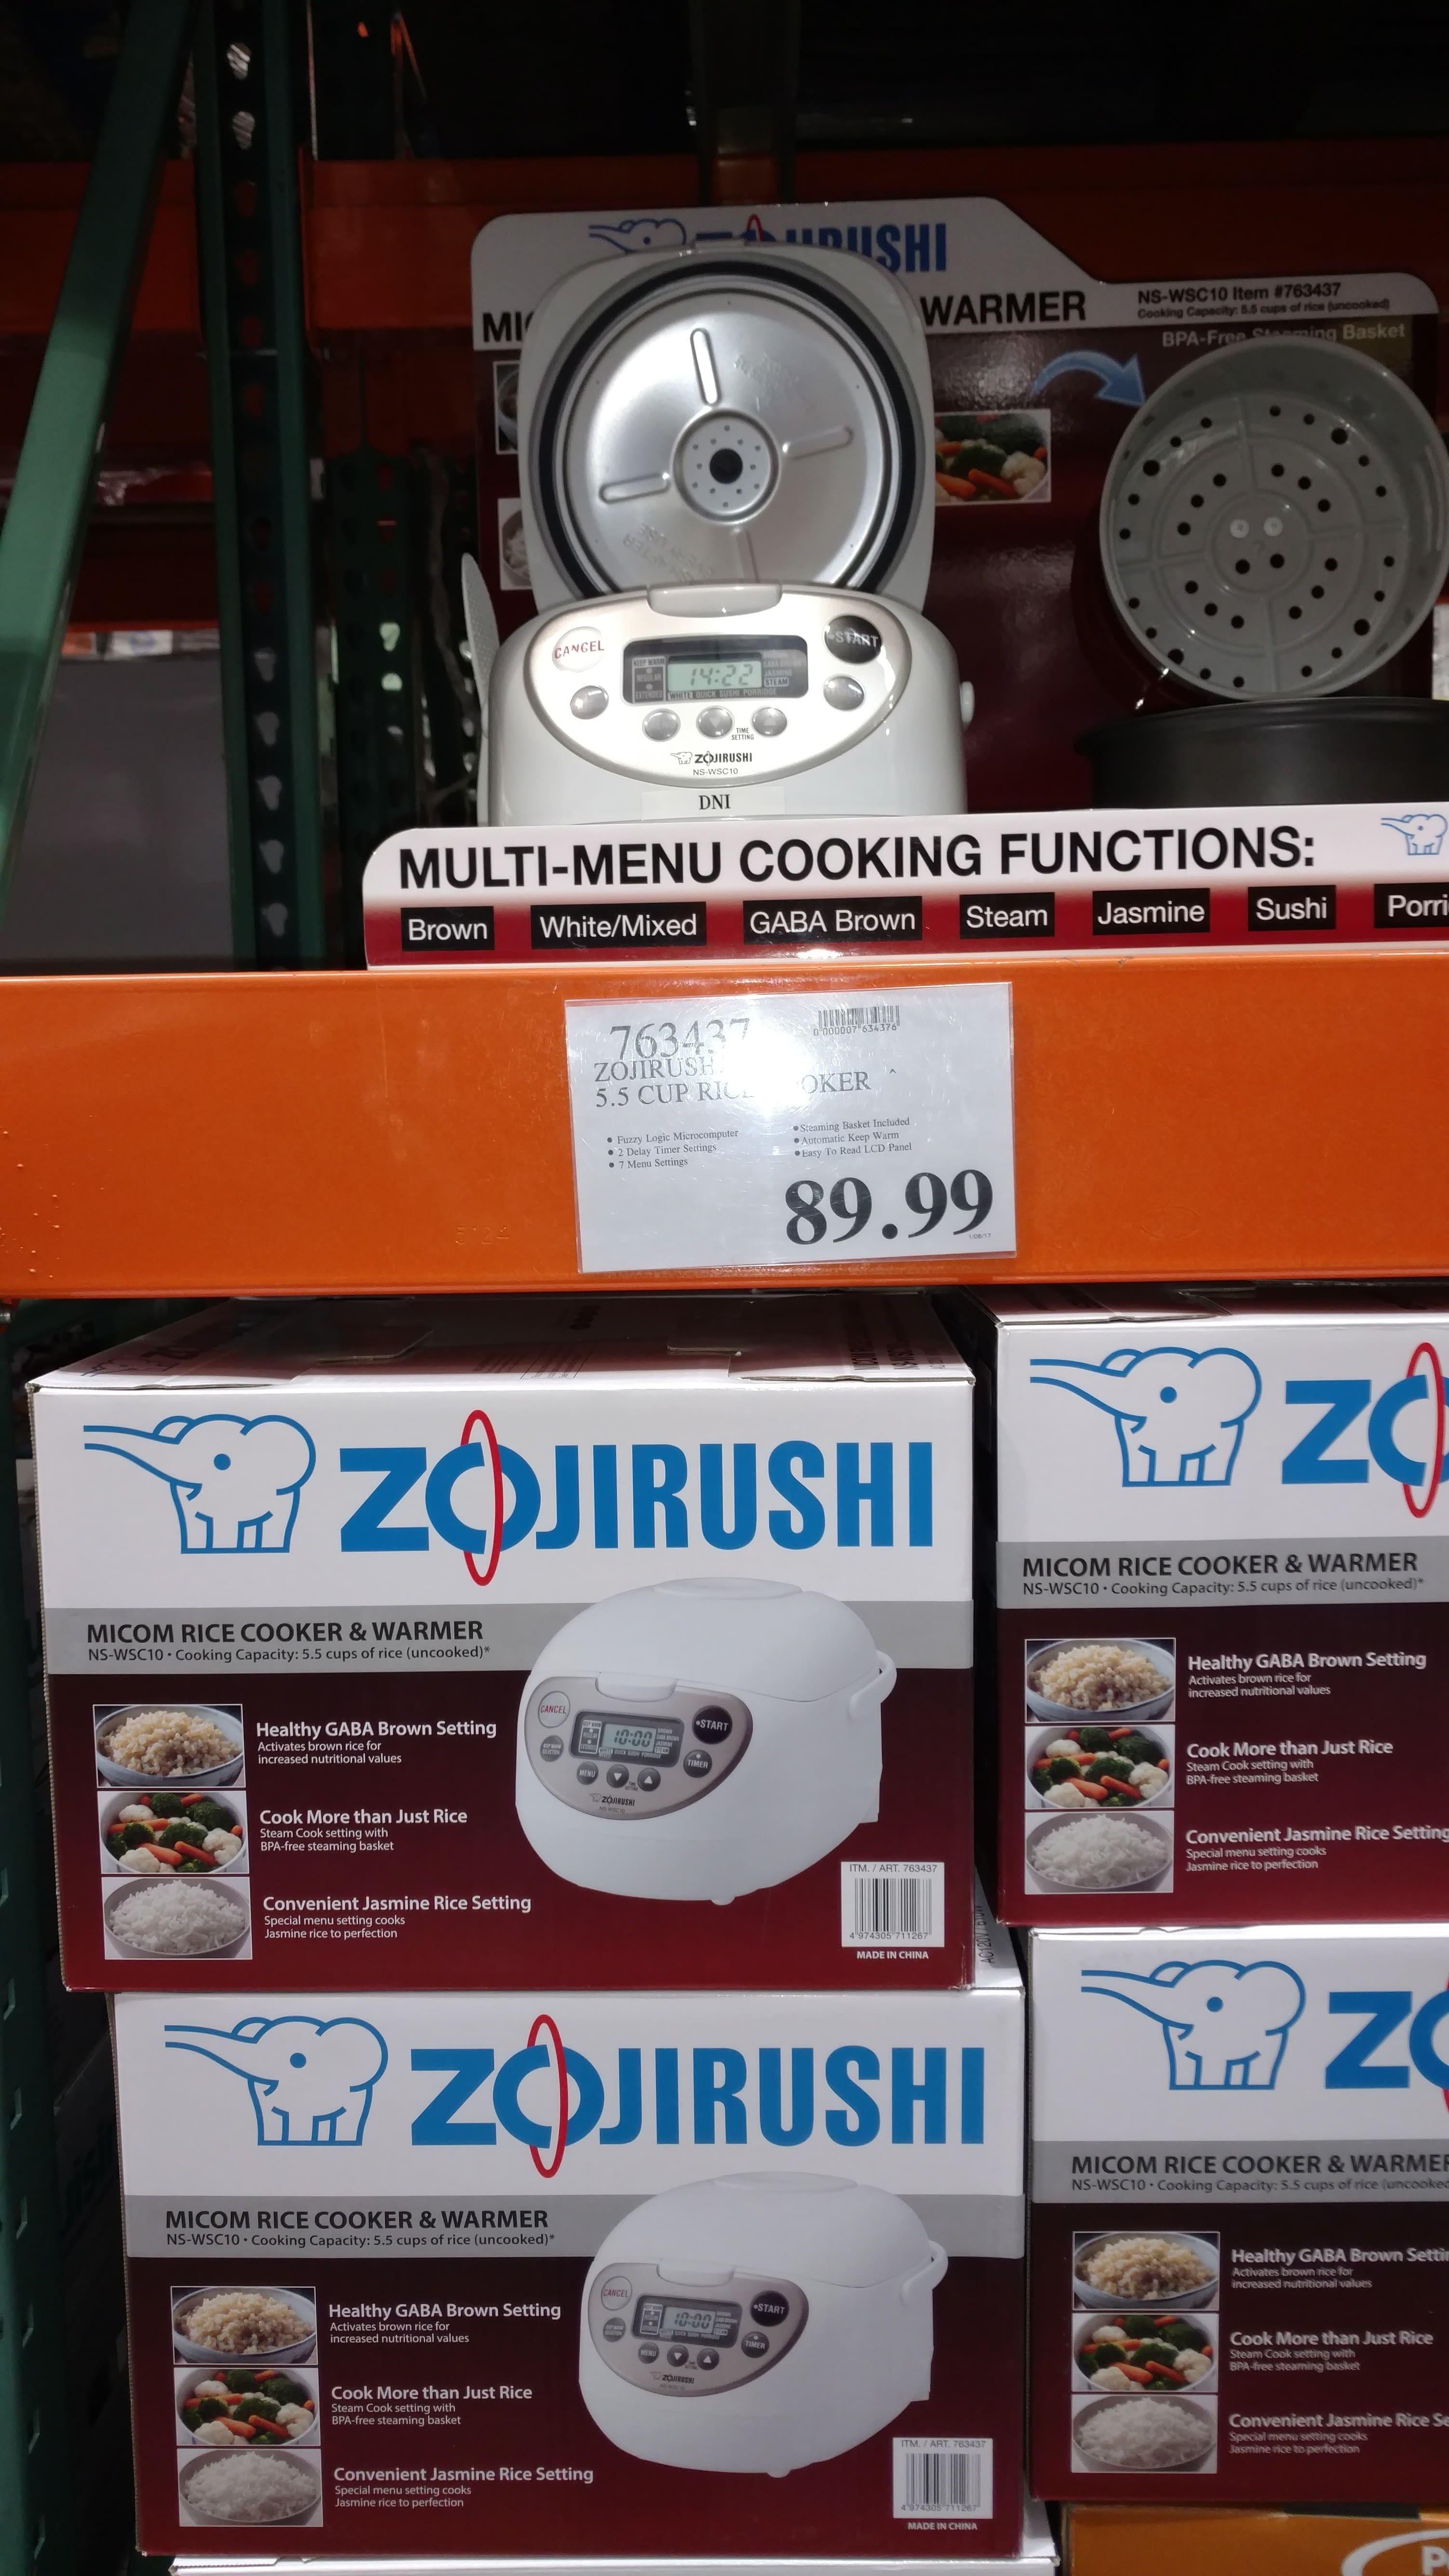 Zojirushi Micom NS-WSC10 5.5-cup Rice Cooker - $89.99 at Costco stores (YMMV)